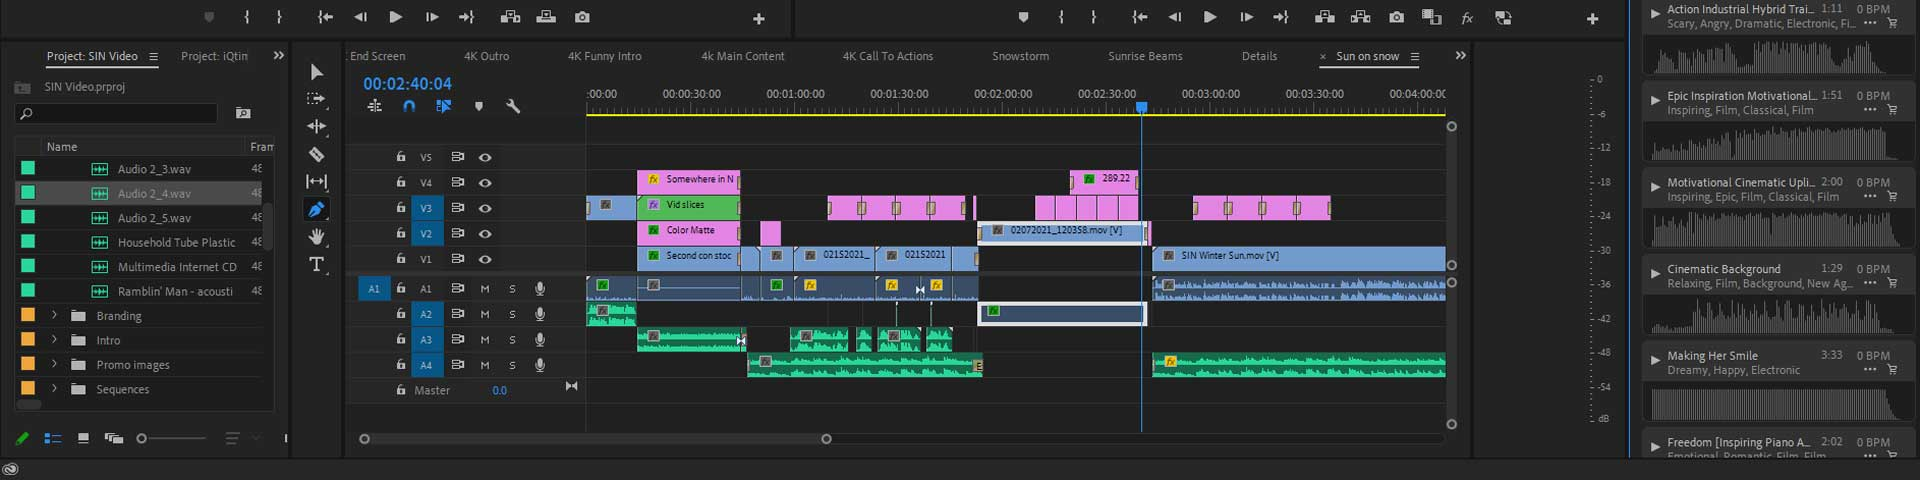 Video editing timeline of an episode of Somewhere In Niagara.